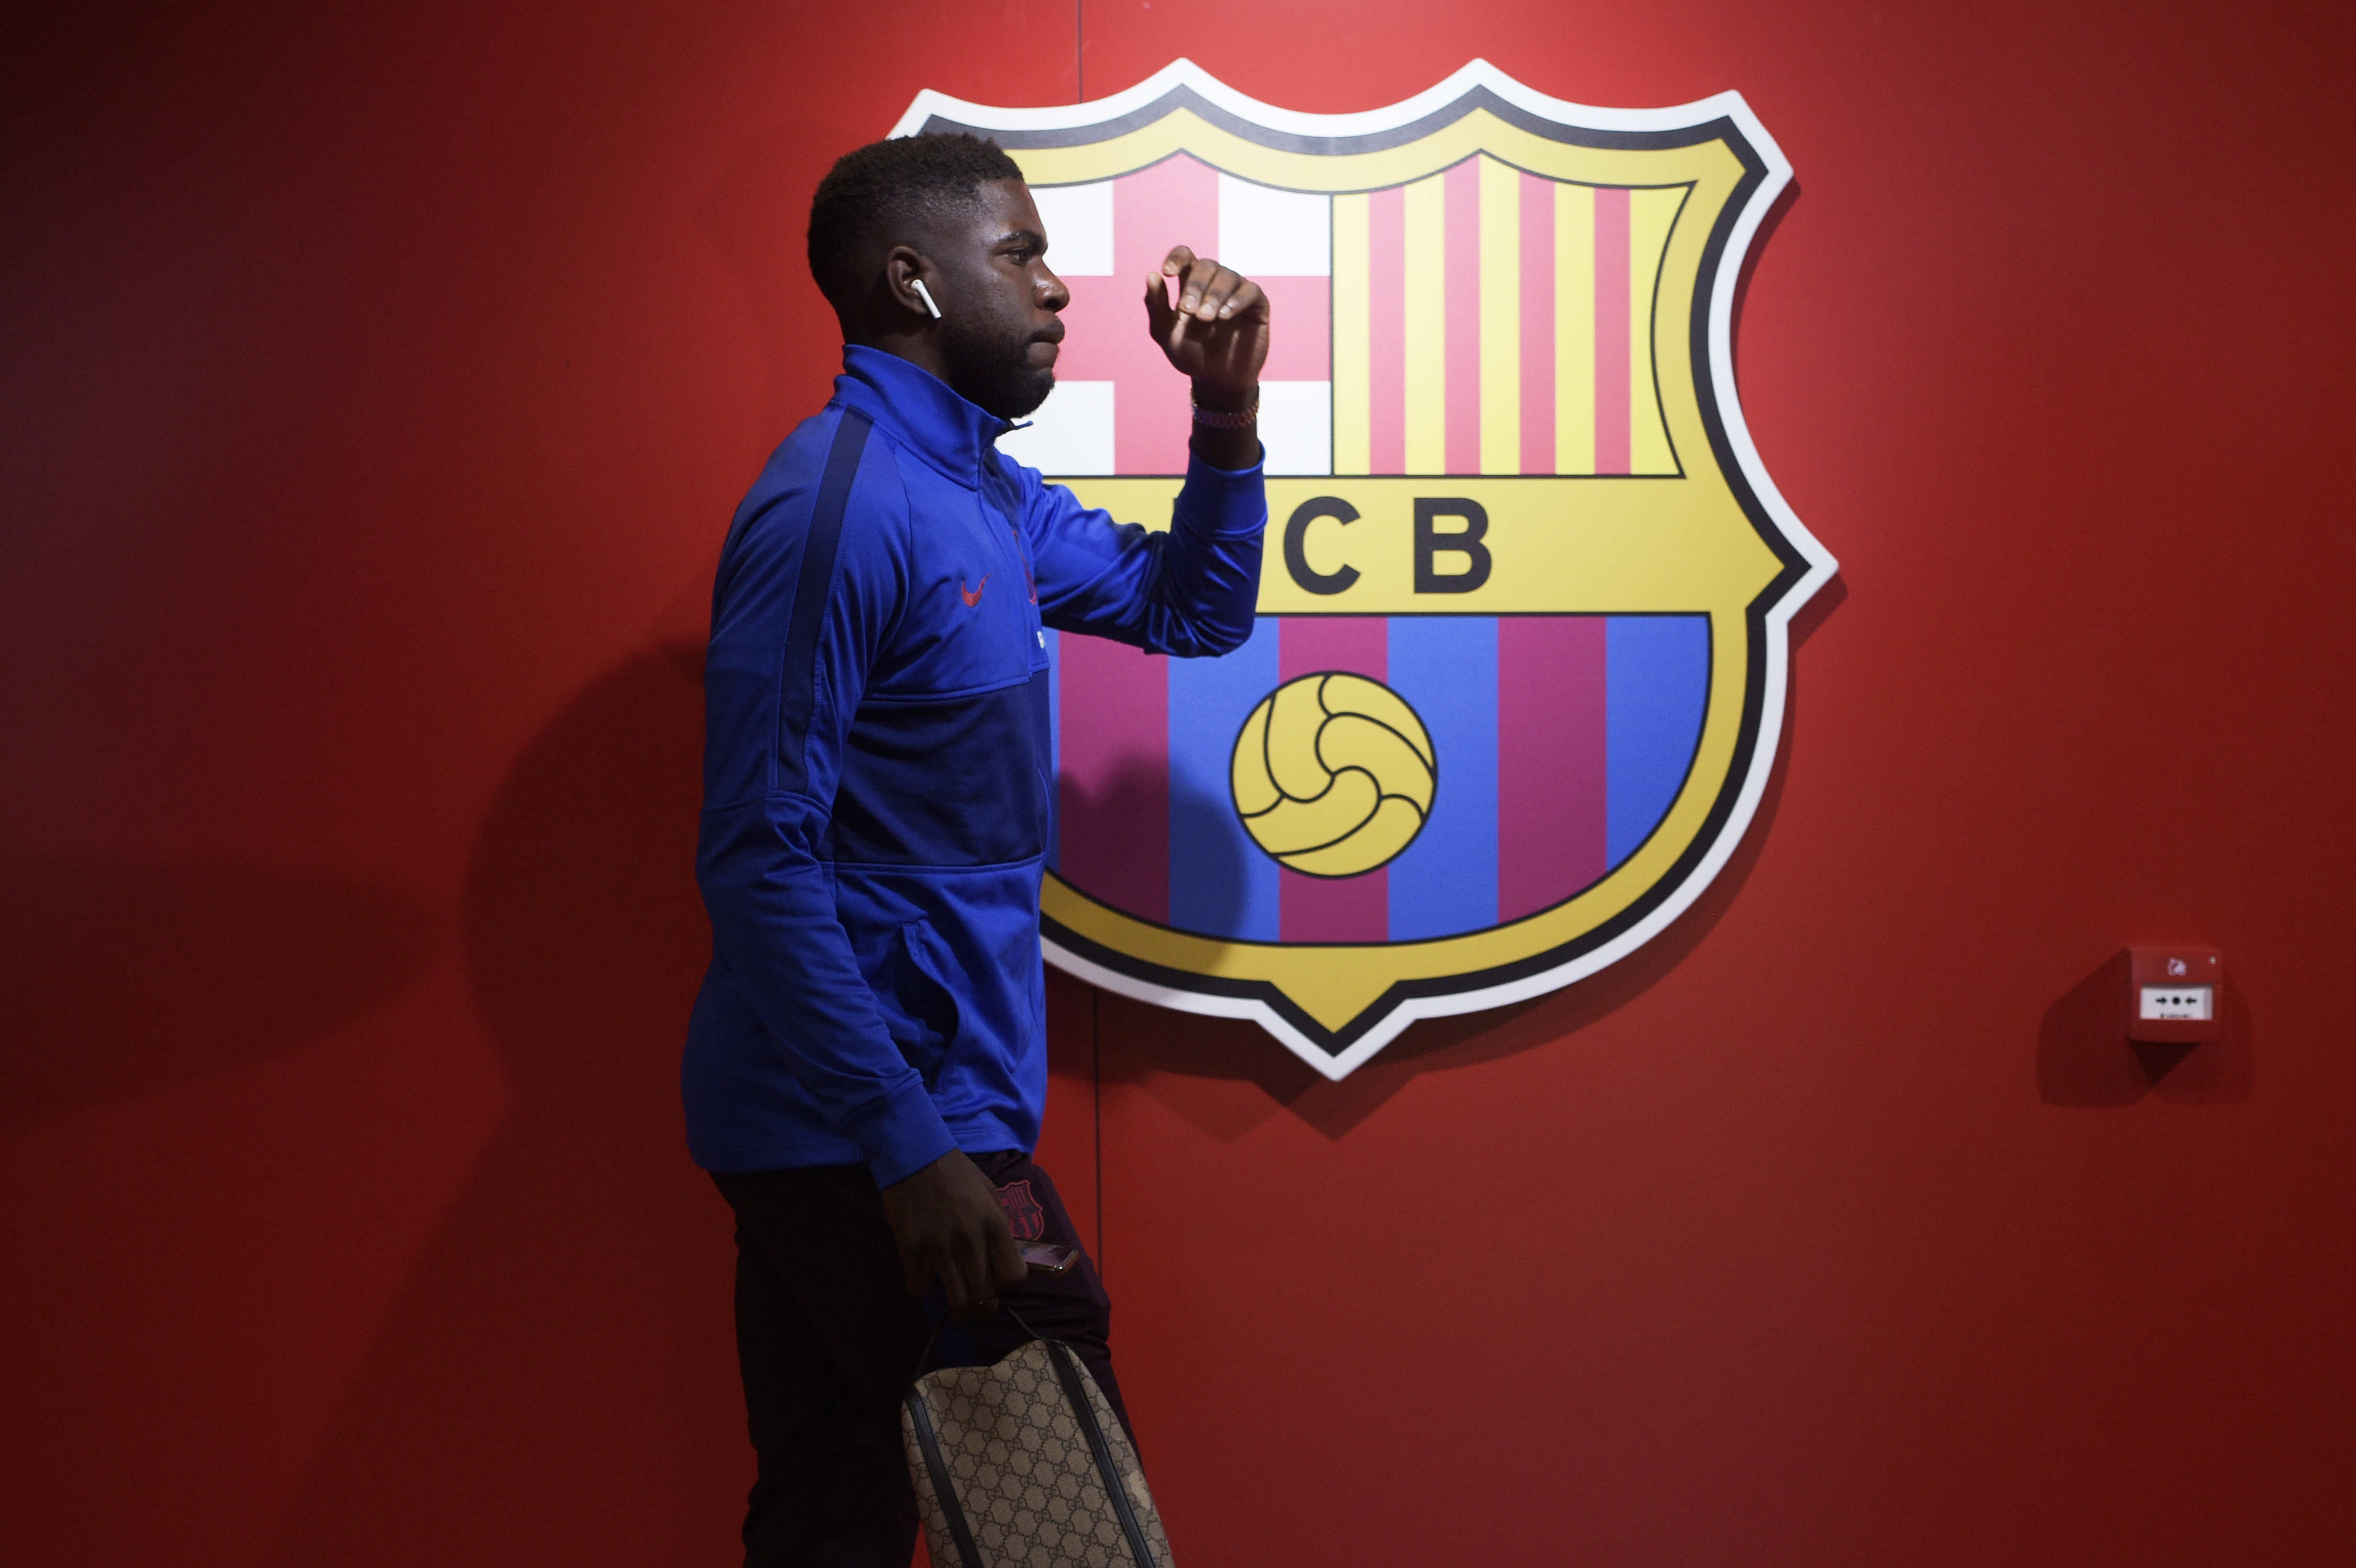 On his way out (Photo by Juan Manuel Serrano Arce/Getty Images)